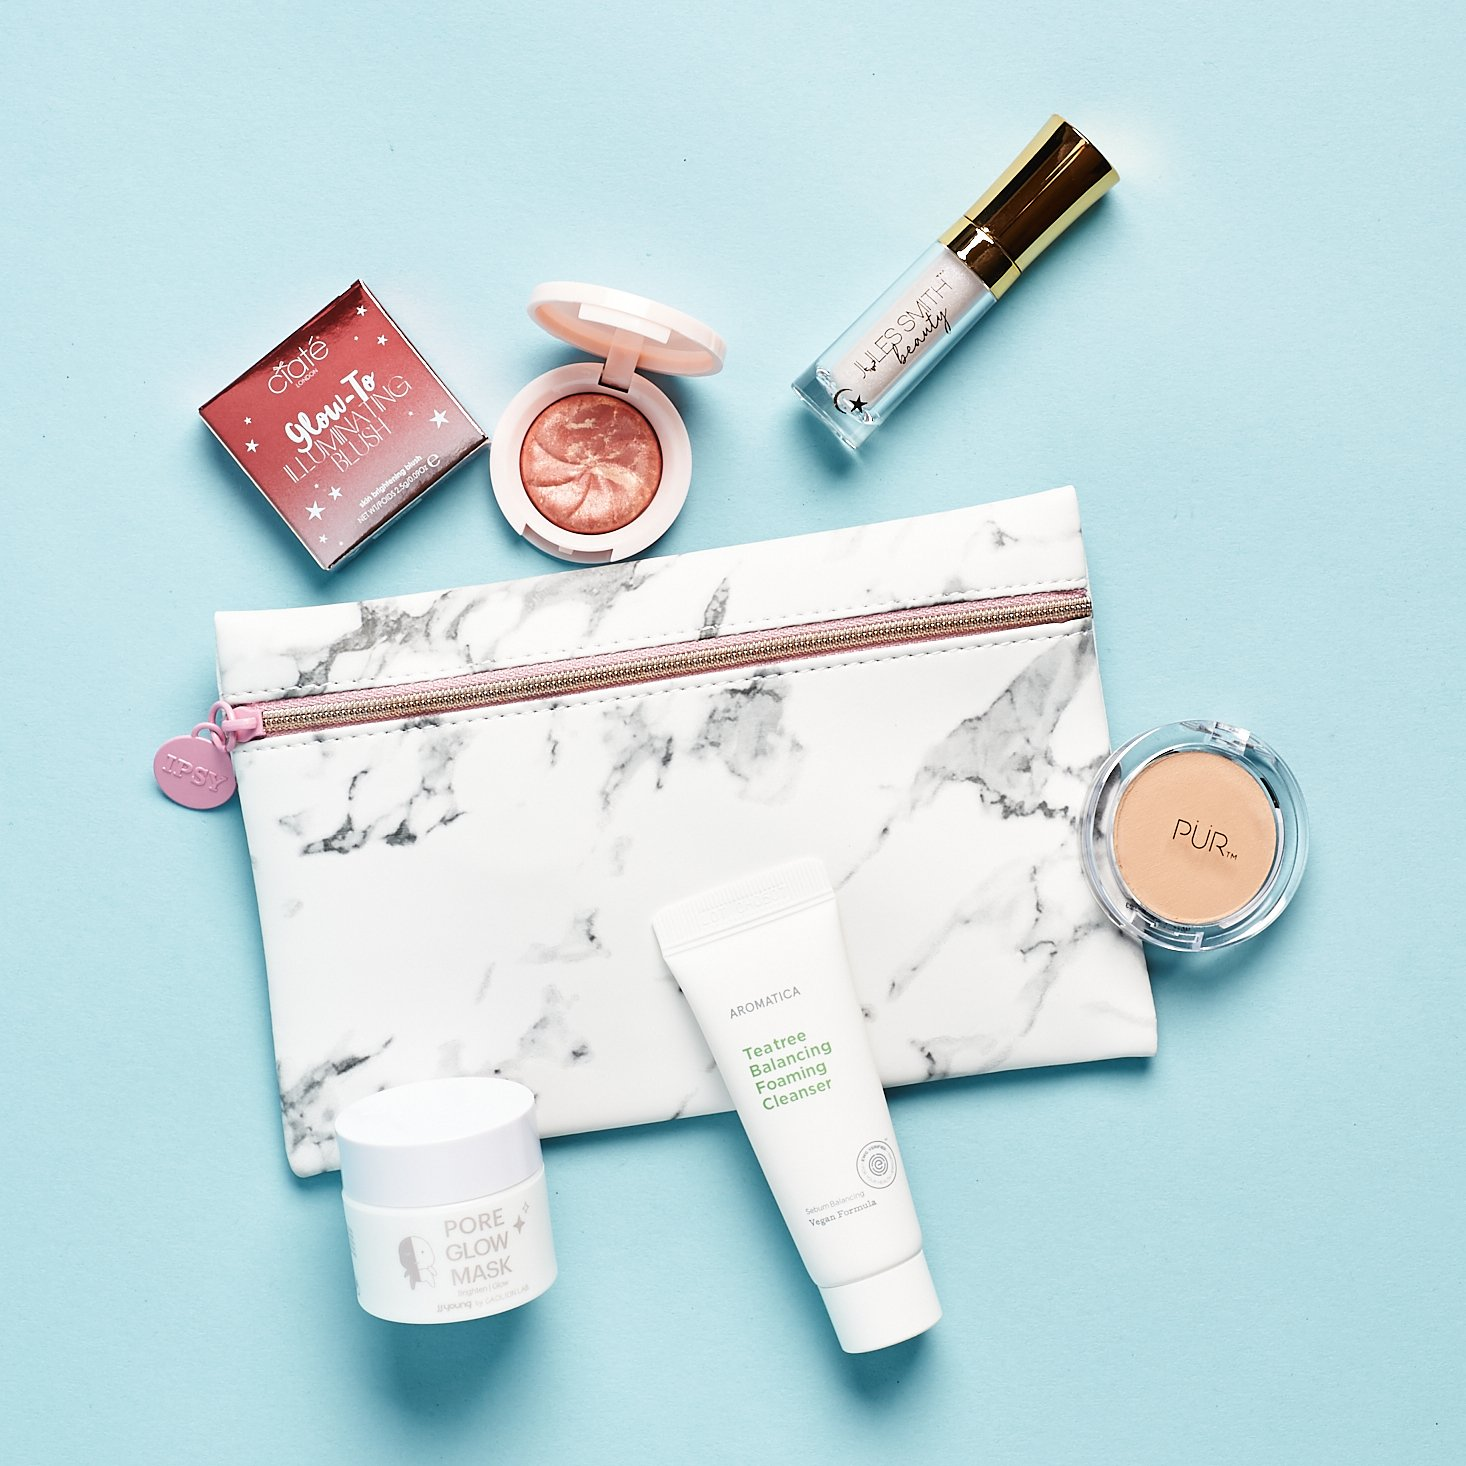 Ipsy Review – January 2020